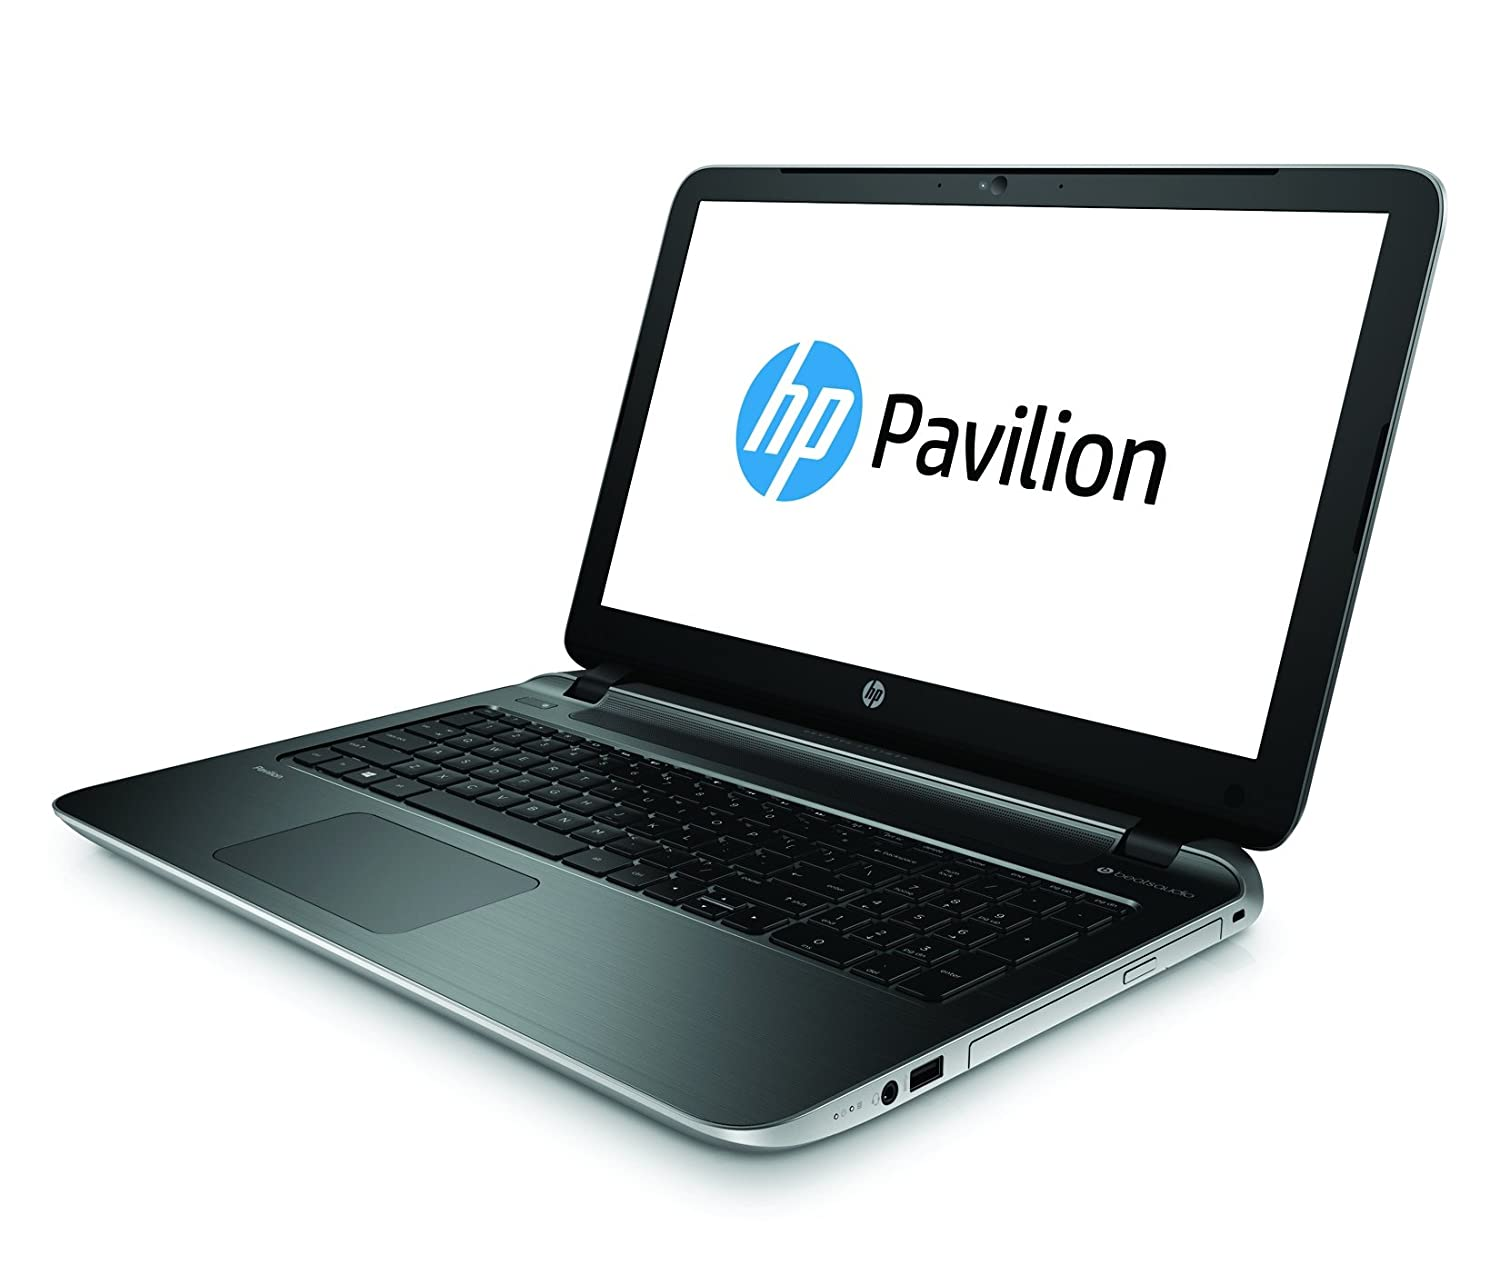 HP Pavilion 15-p264na 15 6-Inch Laptop (AMD 2 GHz, 8 GB RAM, 1 TB HDD,  Windows 8 1)